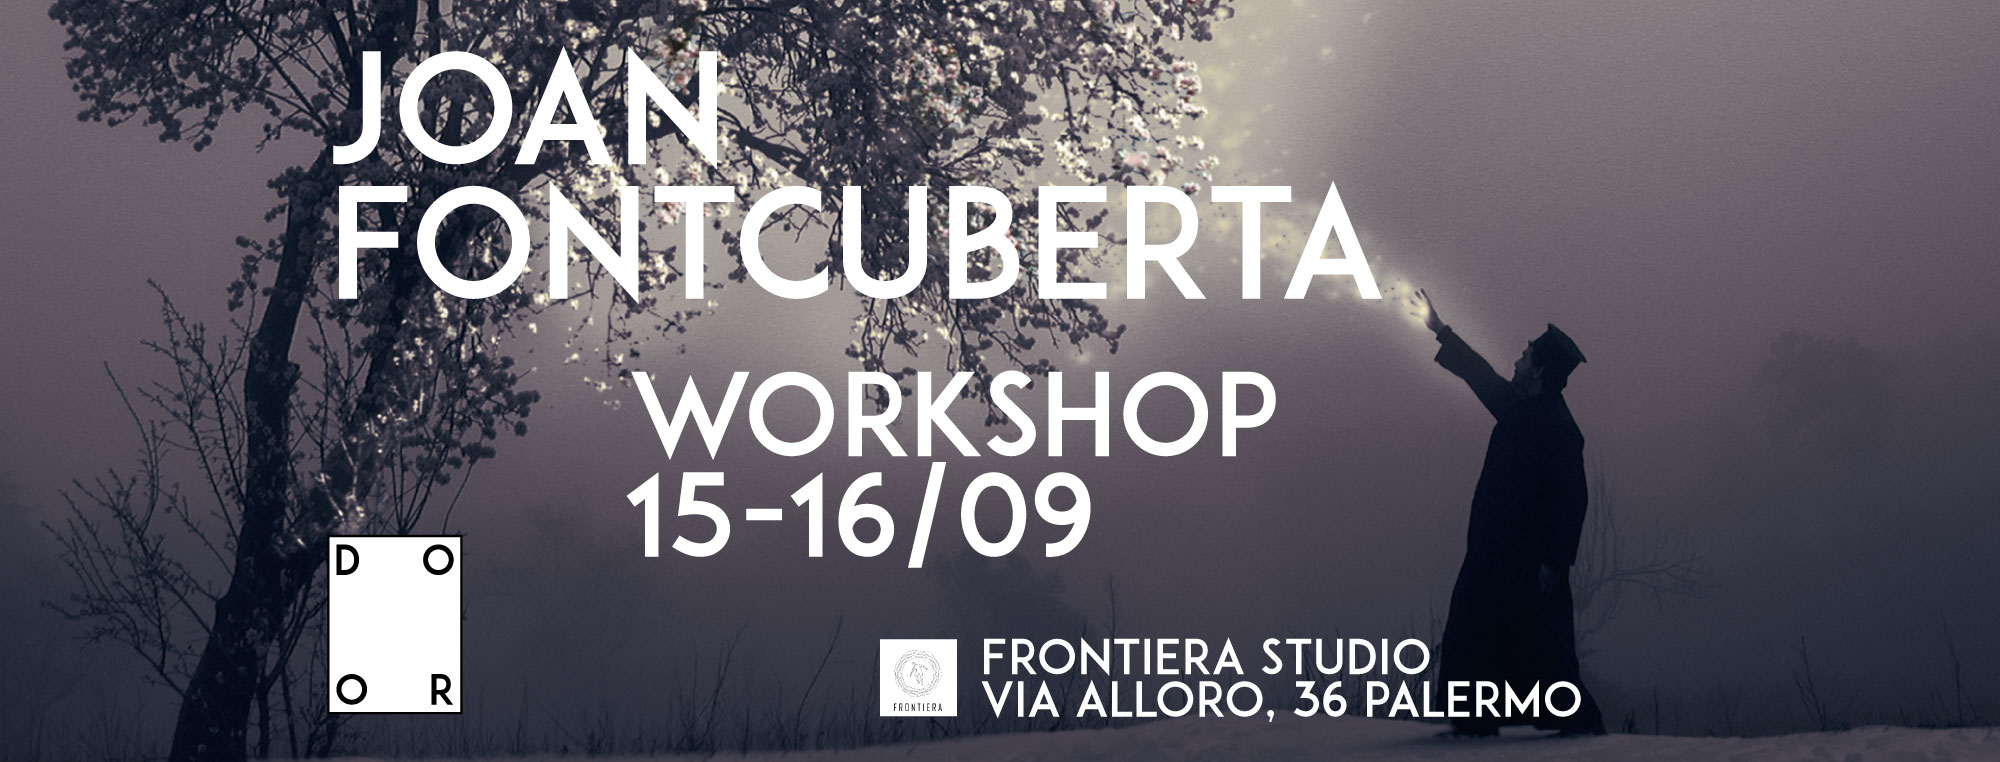 Joan Fontcuberta/Workshop